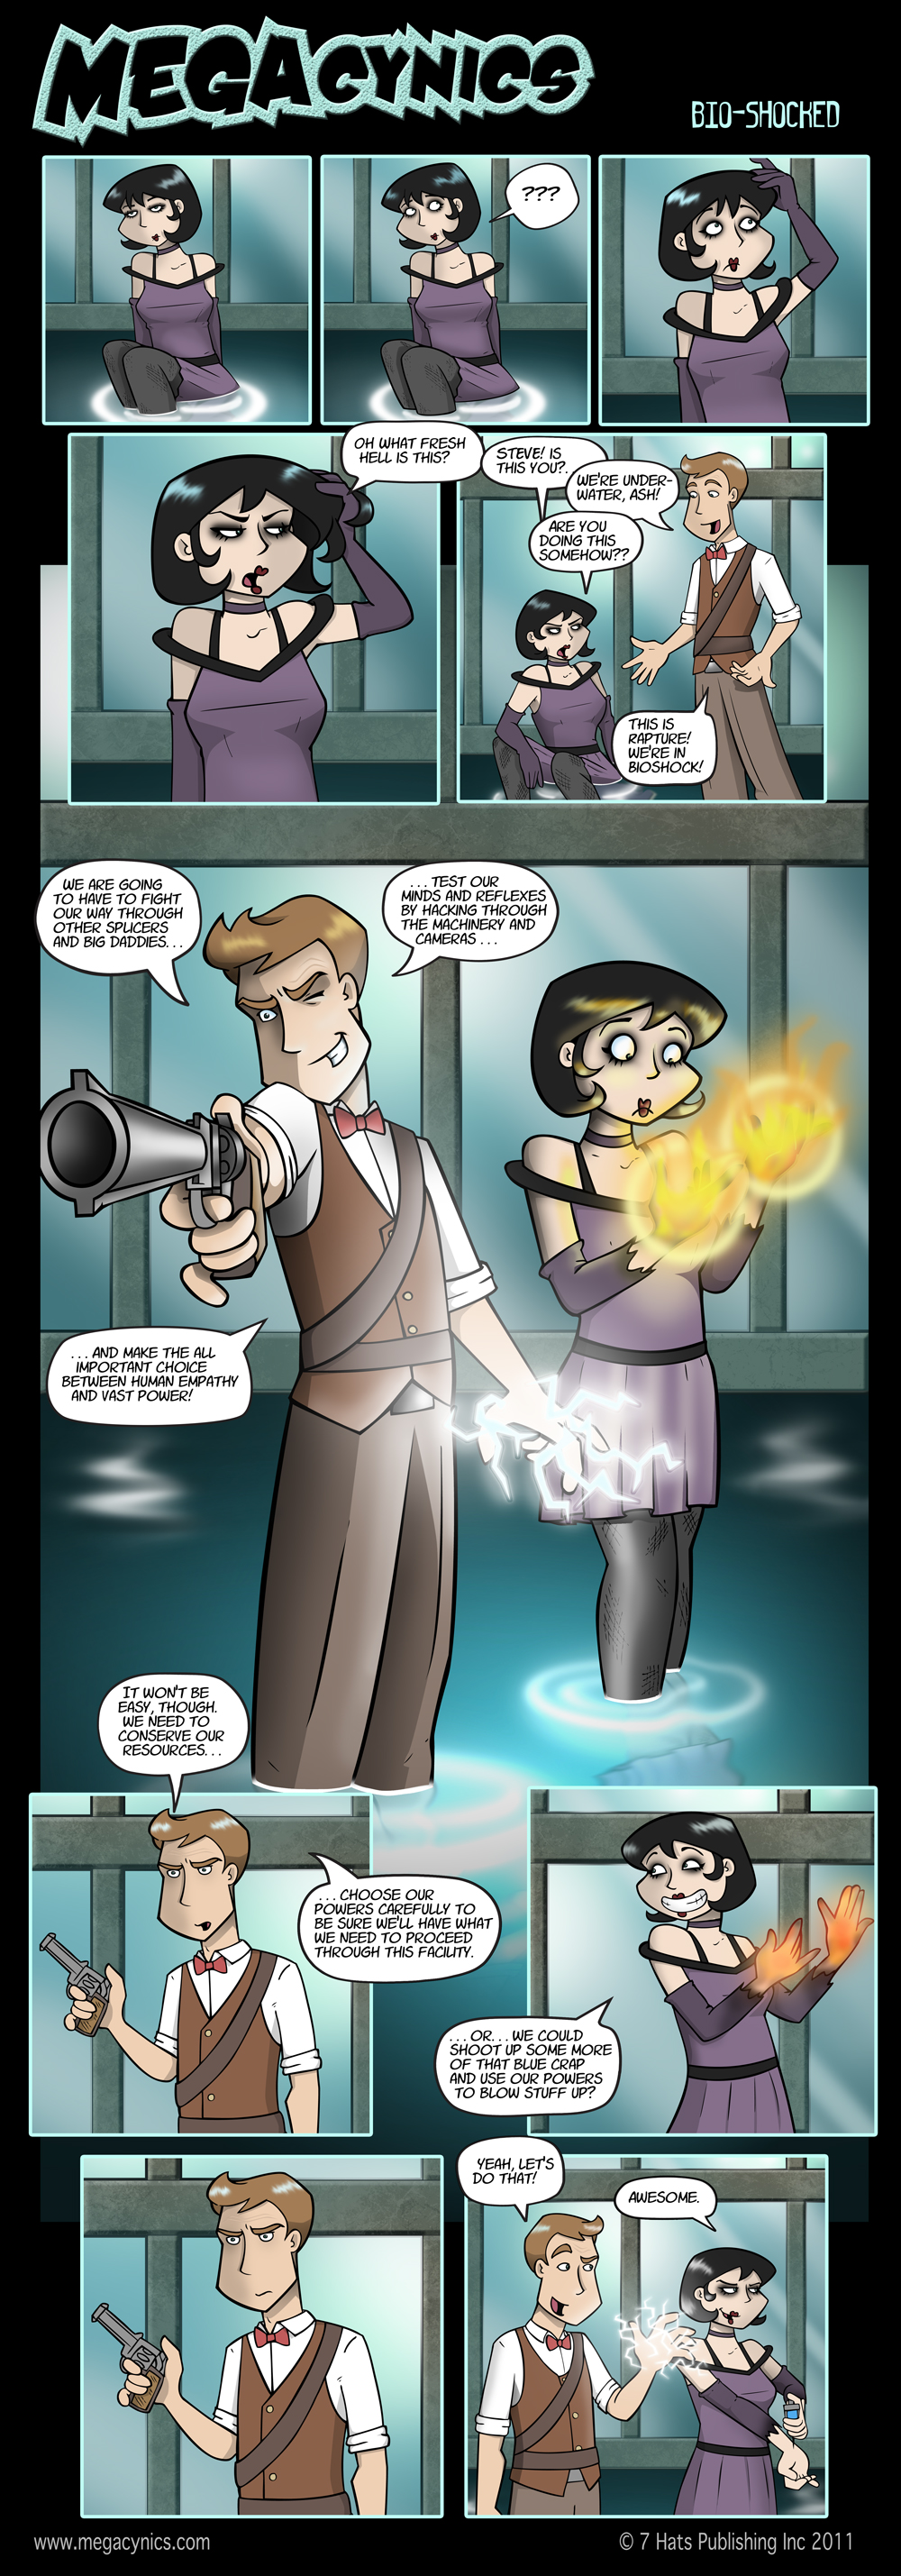 MegaCynics: Bio-Shocked (Aug 5, 2011)